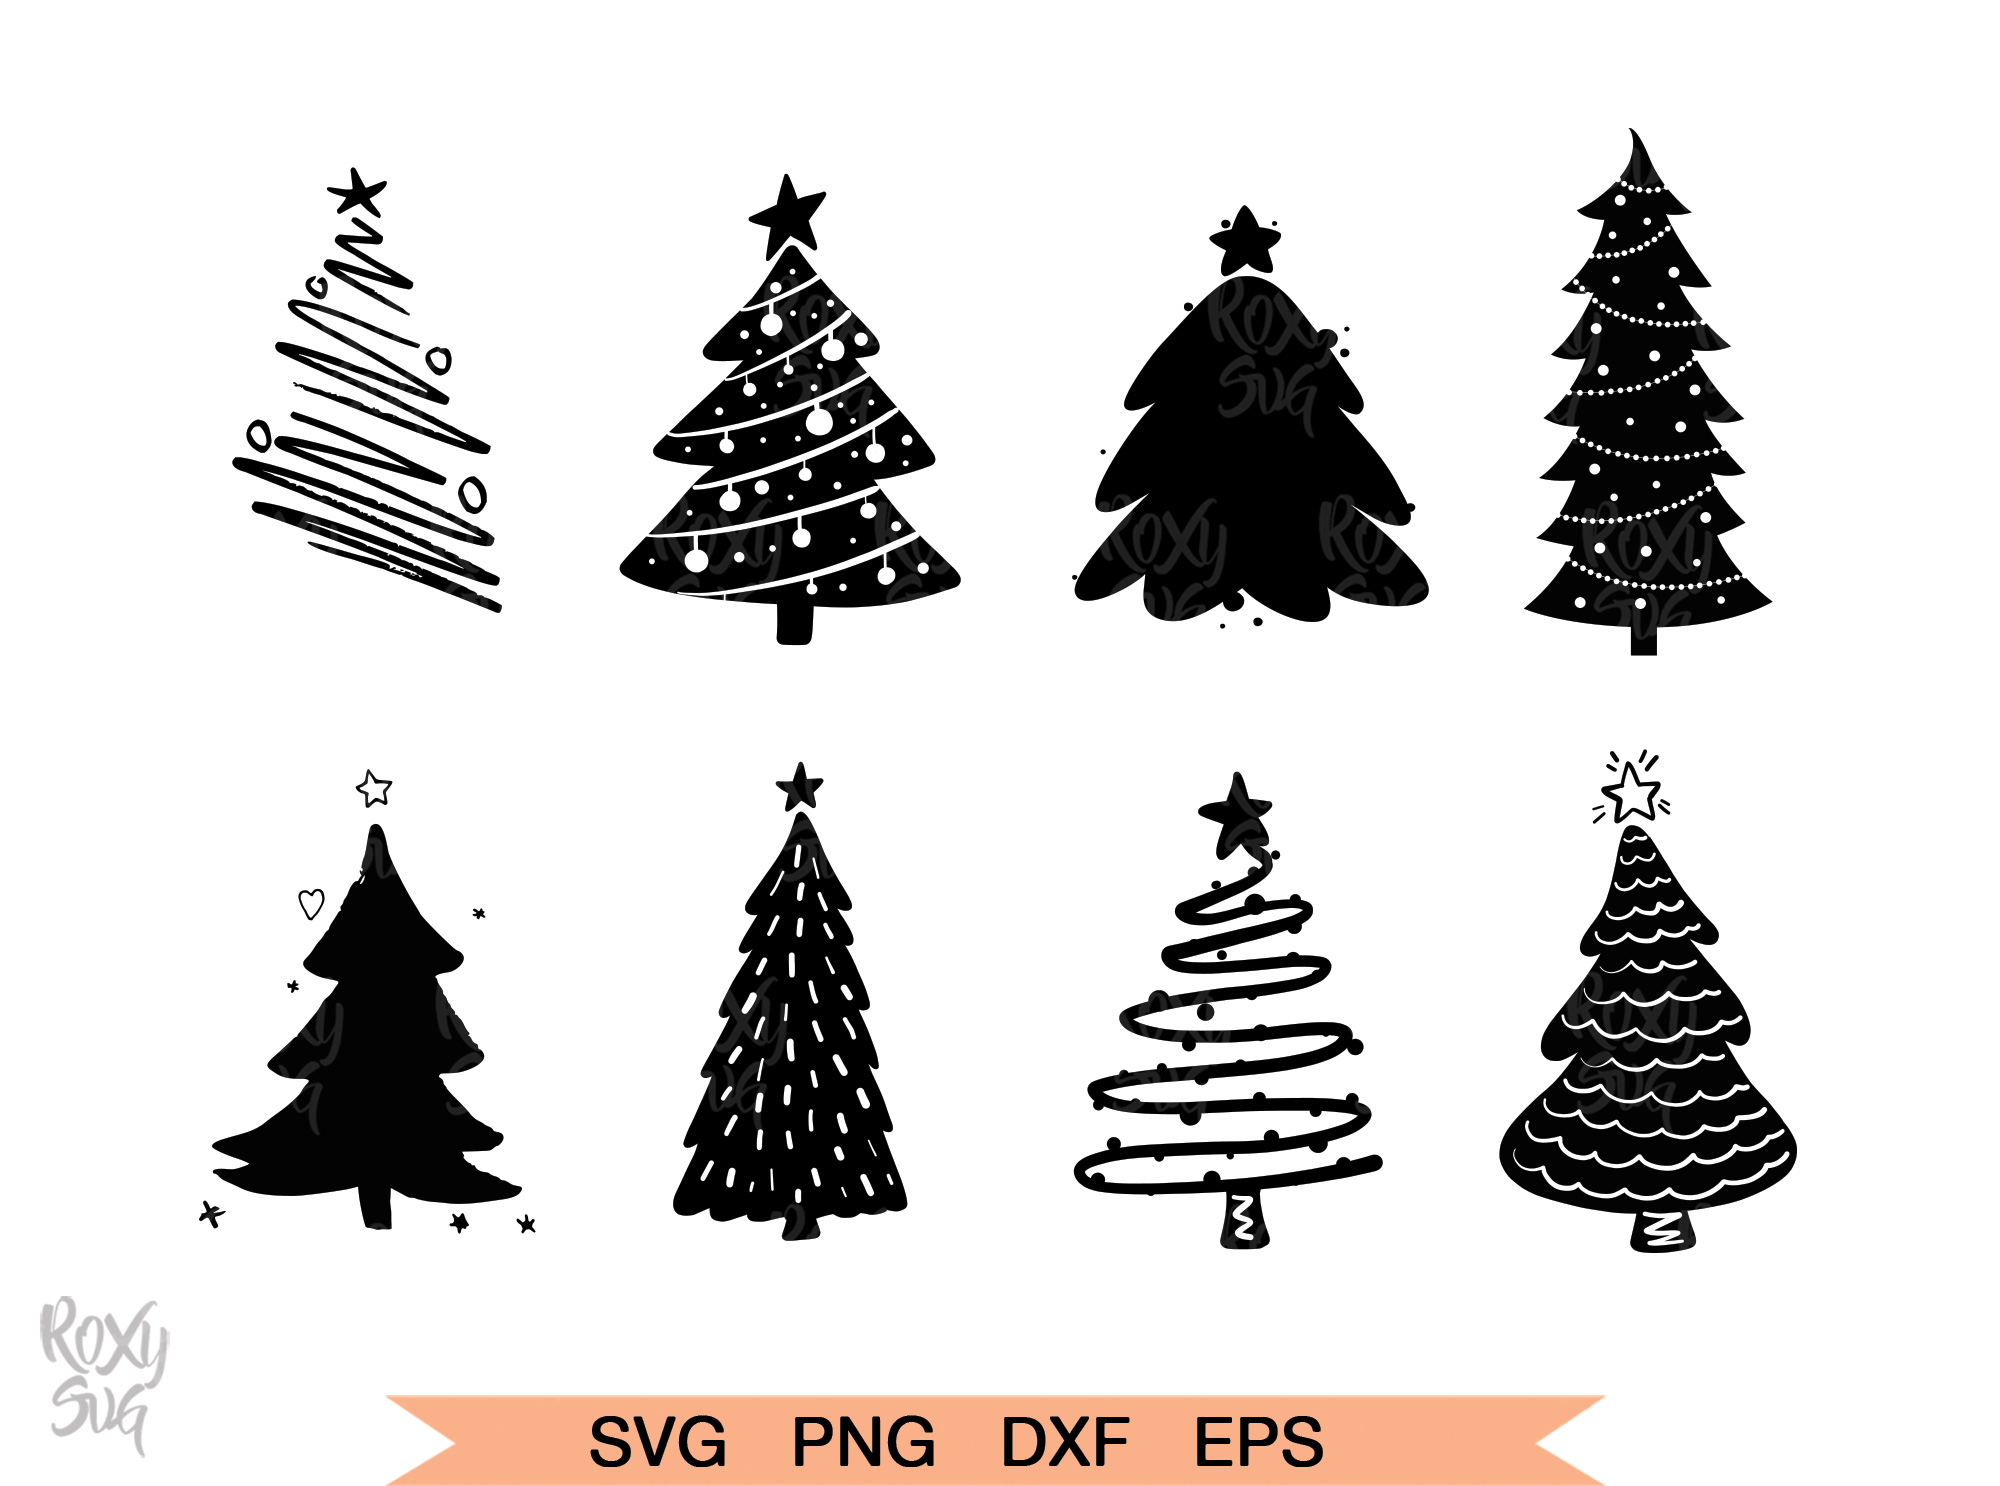 Download Free Christmas Tree Silhouette Graphic By Roxysvg26 Creative Fabrica for Cricut Explore, Silhouette and other cutting machines.